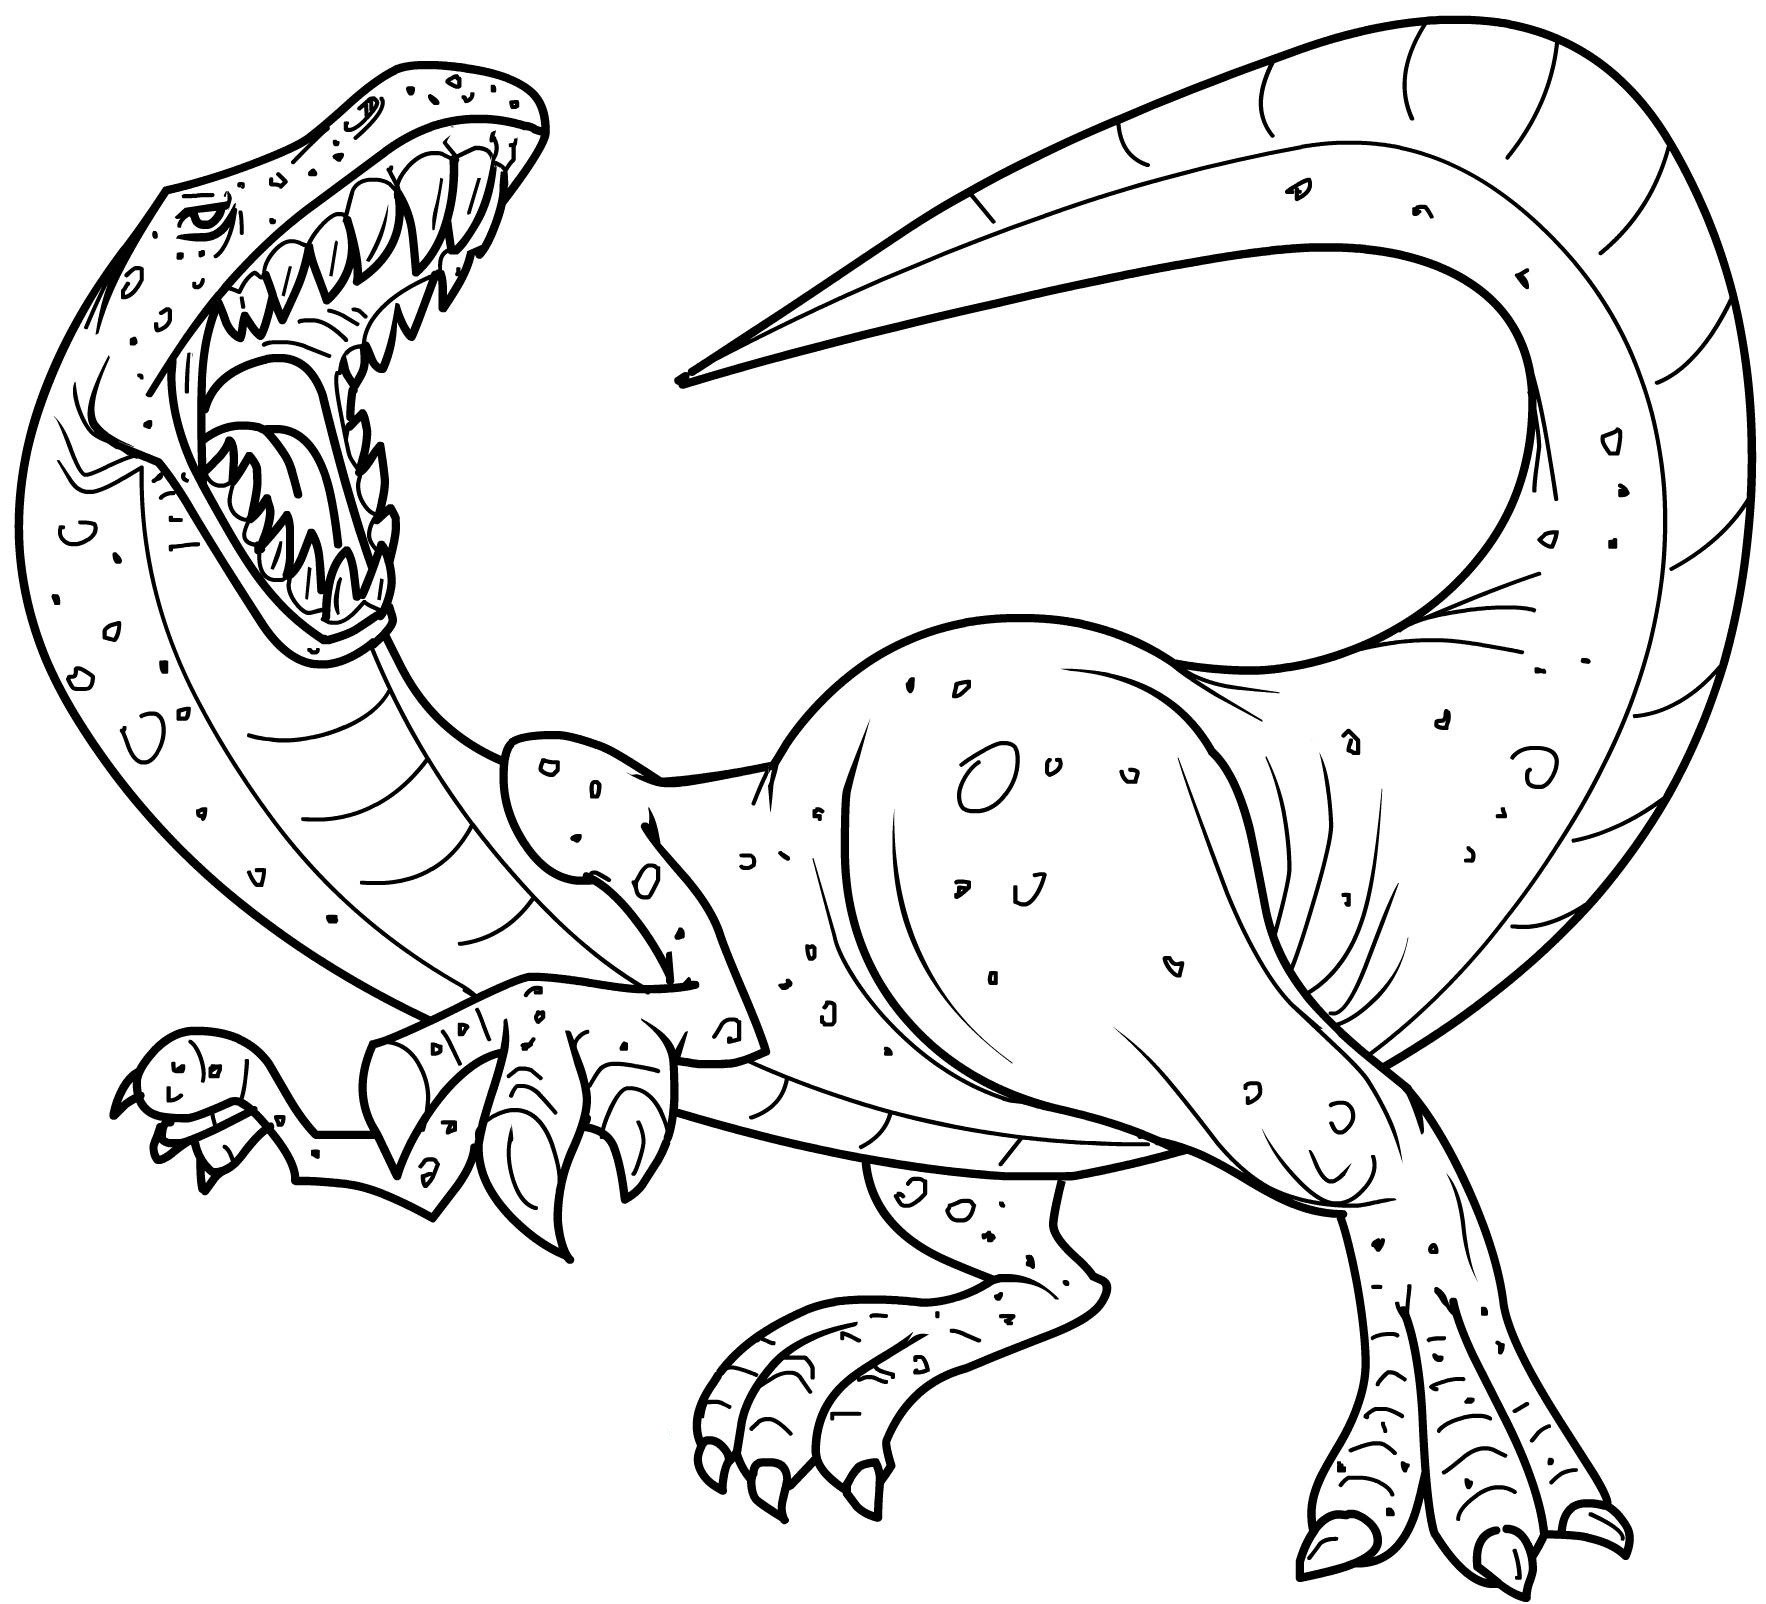 dinosaurs pictures to color printable dinosaur coloring pages for kids cool2bkids dinosaurs to pictures color